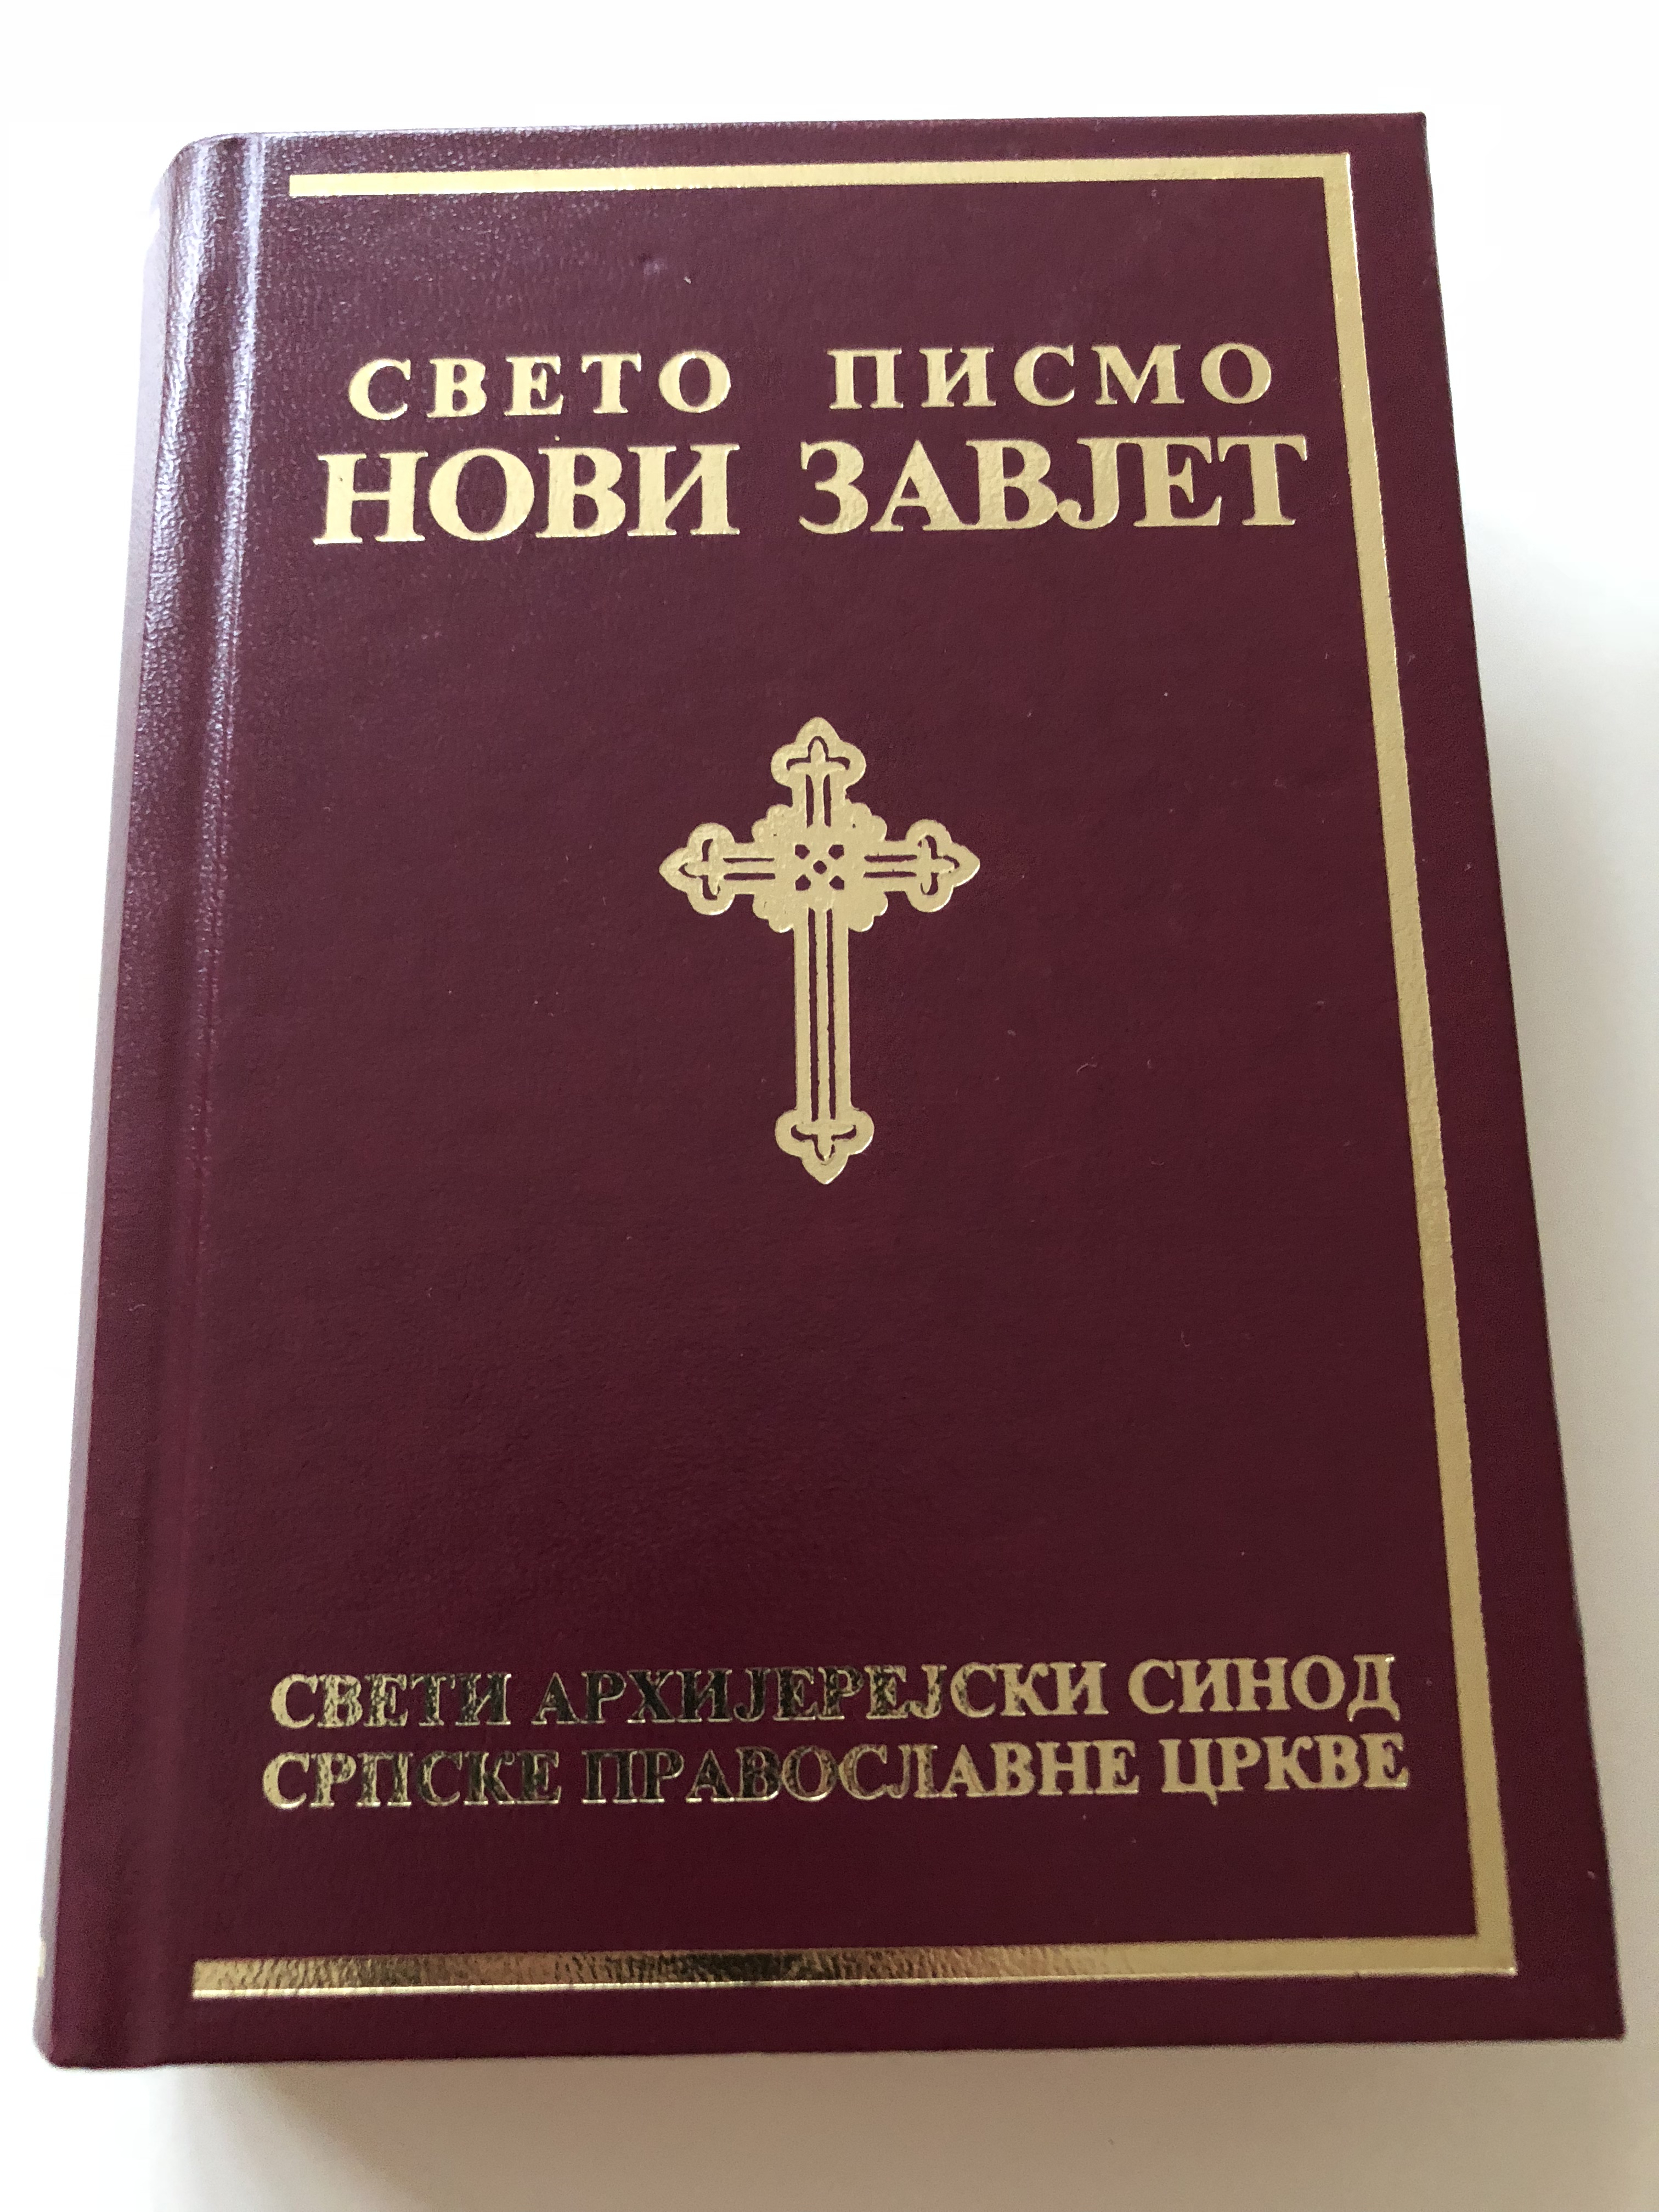 serbian-nt-orthodox-small-gold-lettering-cover1.jpg